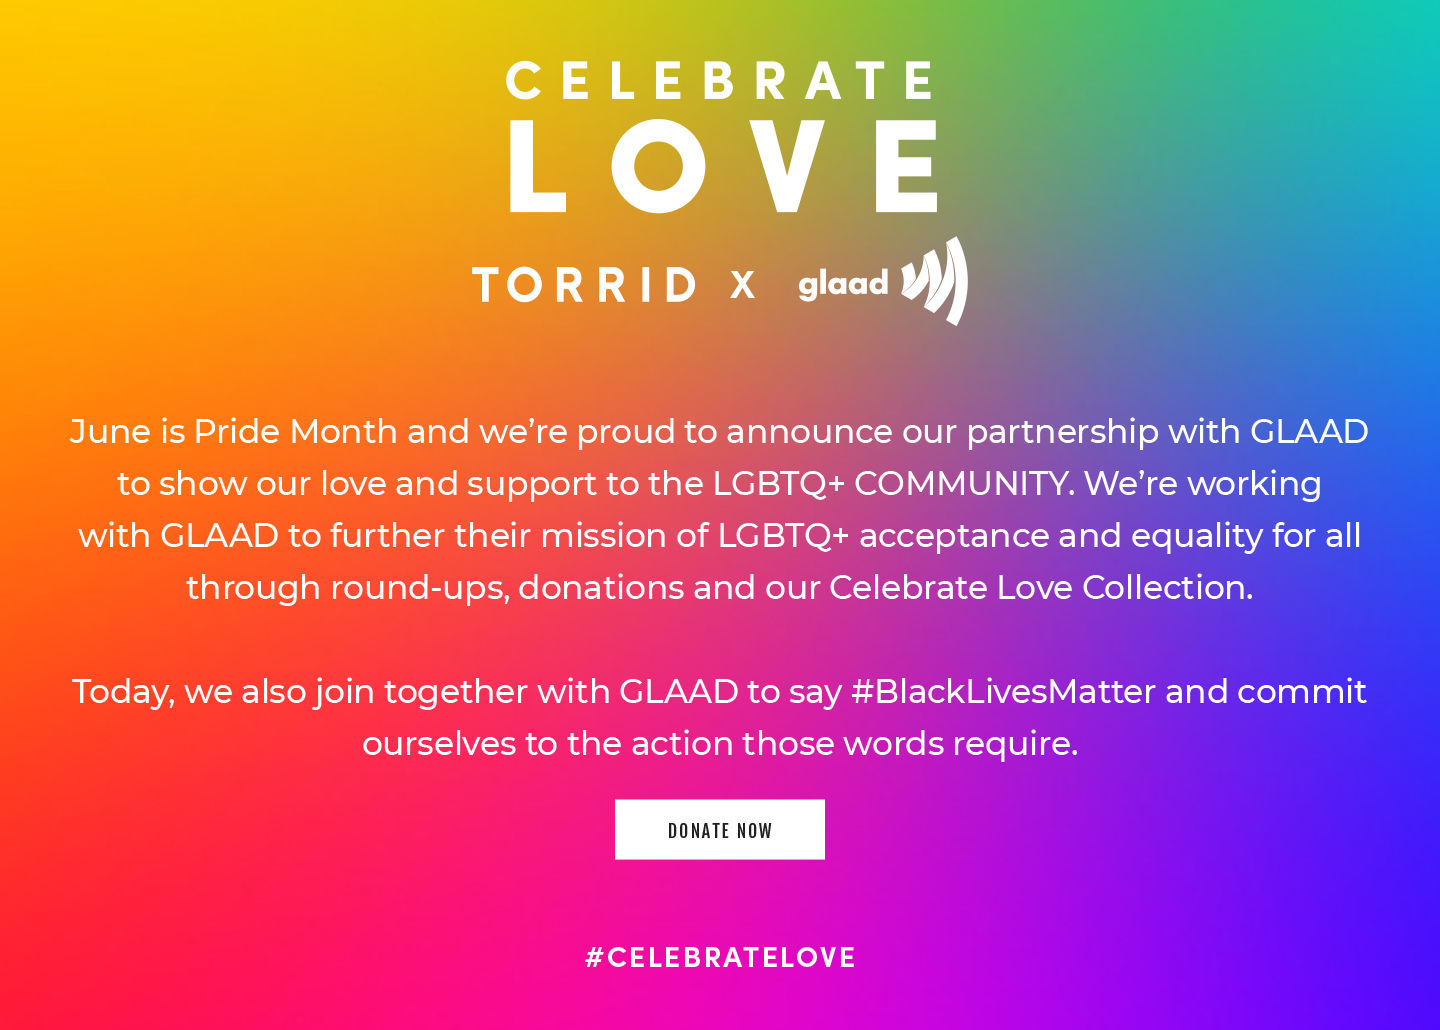 Celebrate LOVE Torrid X glaad. June is Pride Month, and we're so proud to announce that we've teamed up with GLAAD to show our love and support to the LGBTQ+ community! We're working with GLAAD to further their mission of LGBTQ+ acceptance through rounds-ups, donations and our Celebrate Love Collection for the month of June. Donate Now